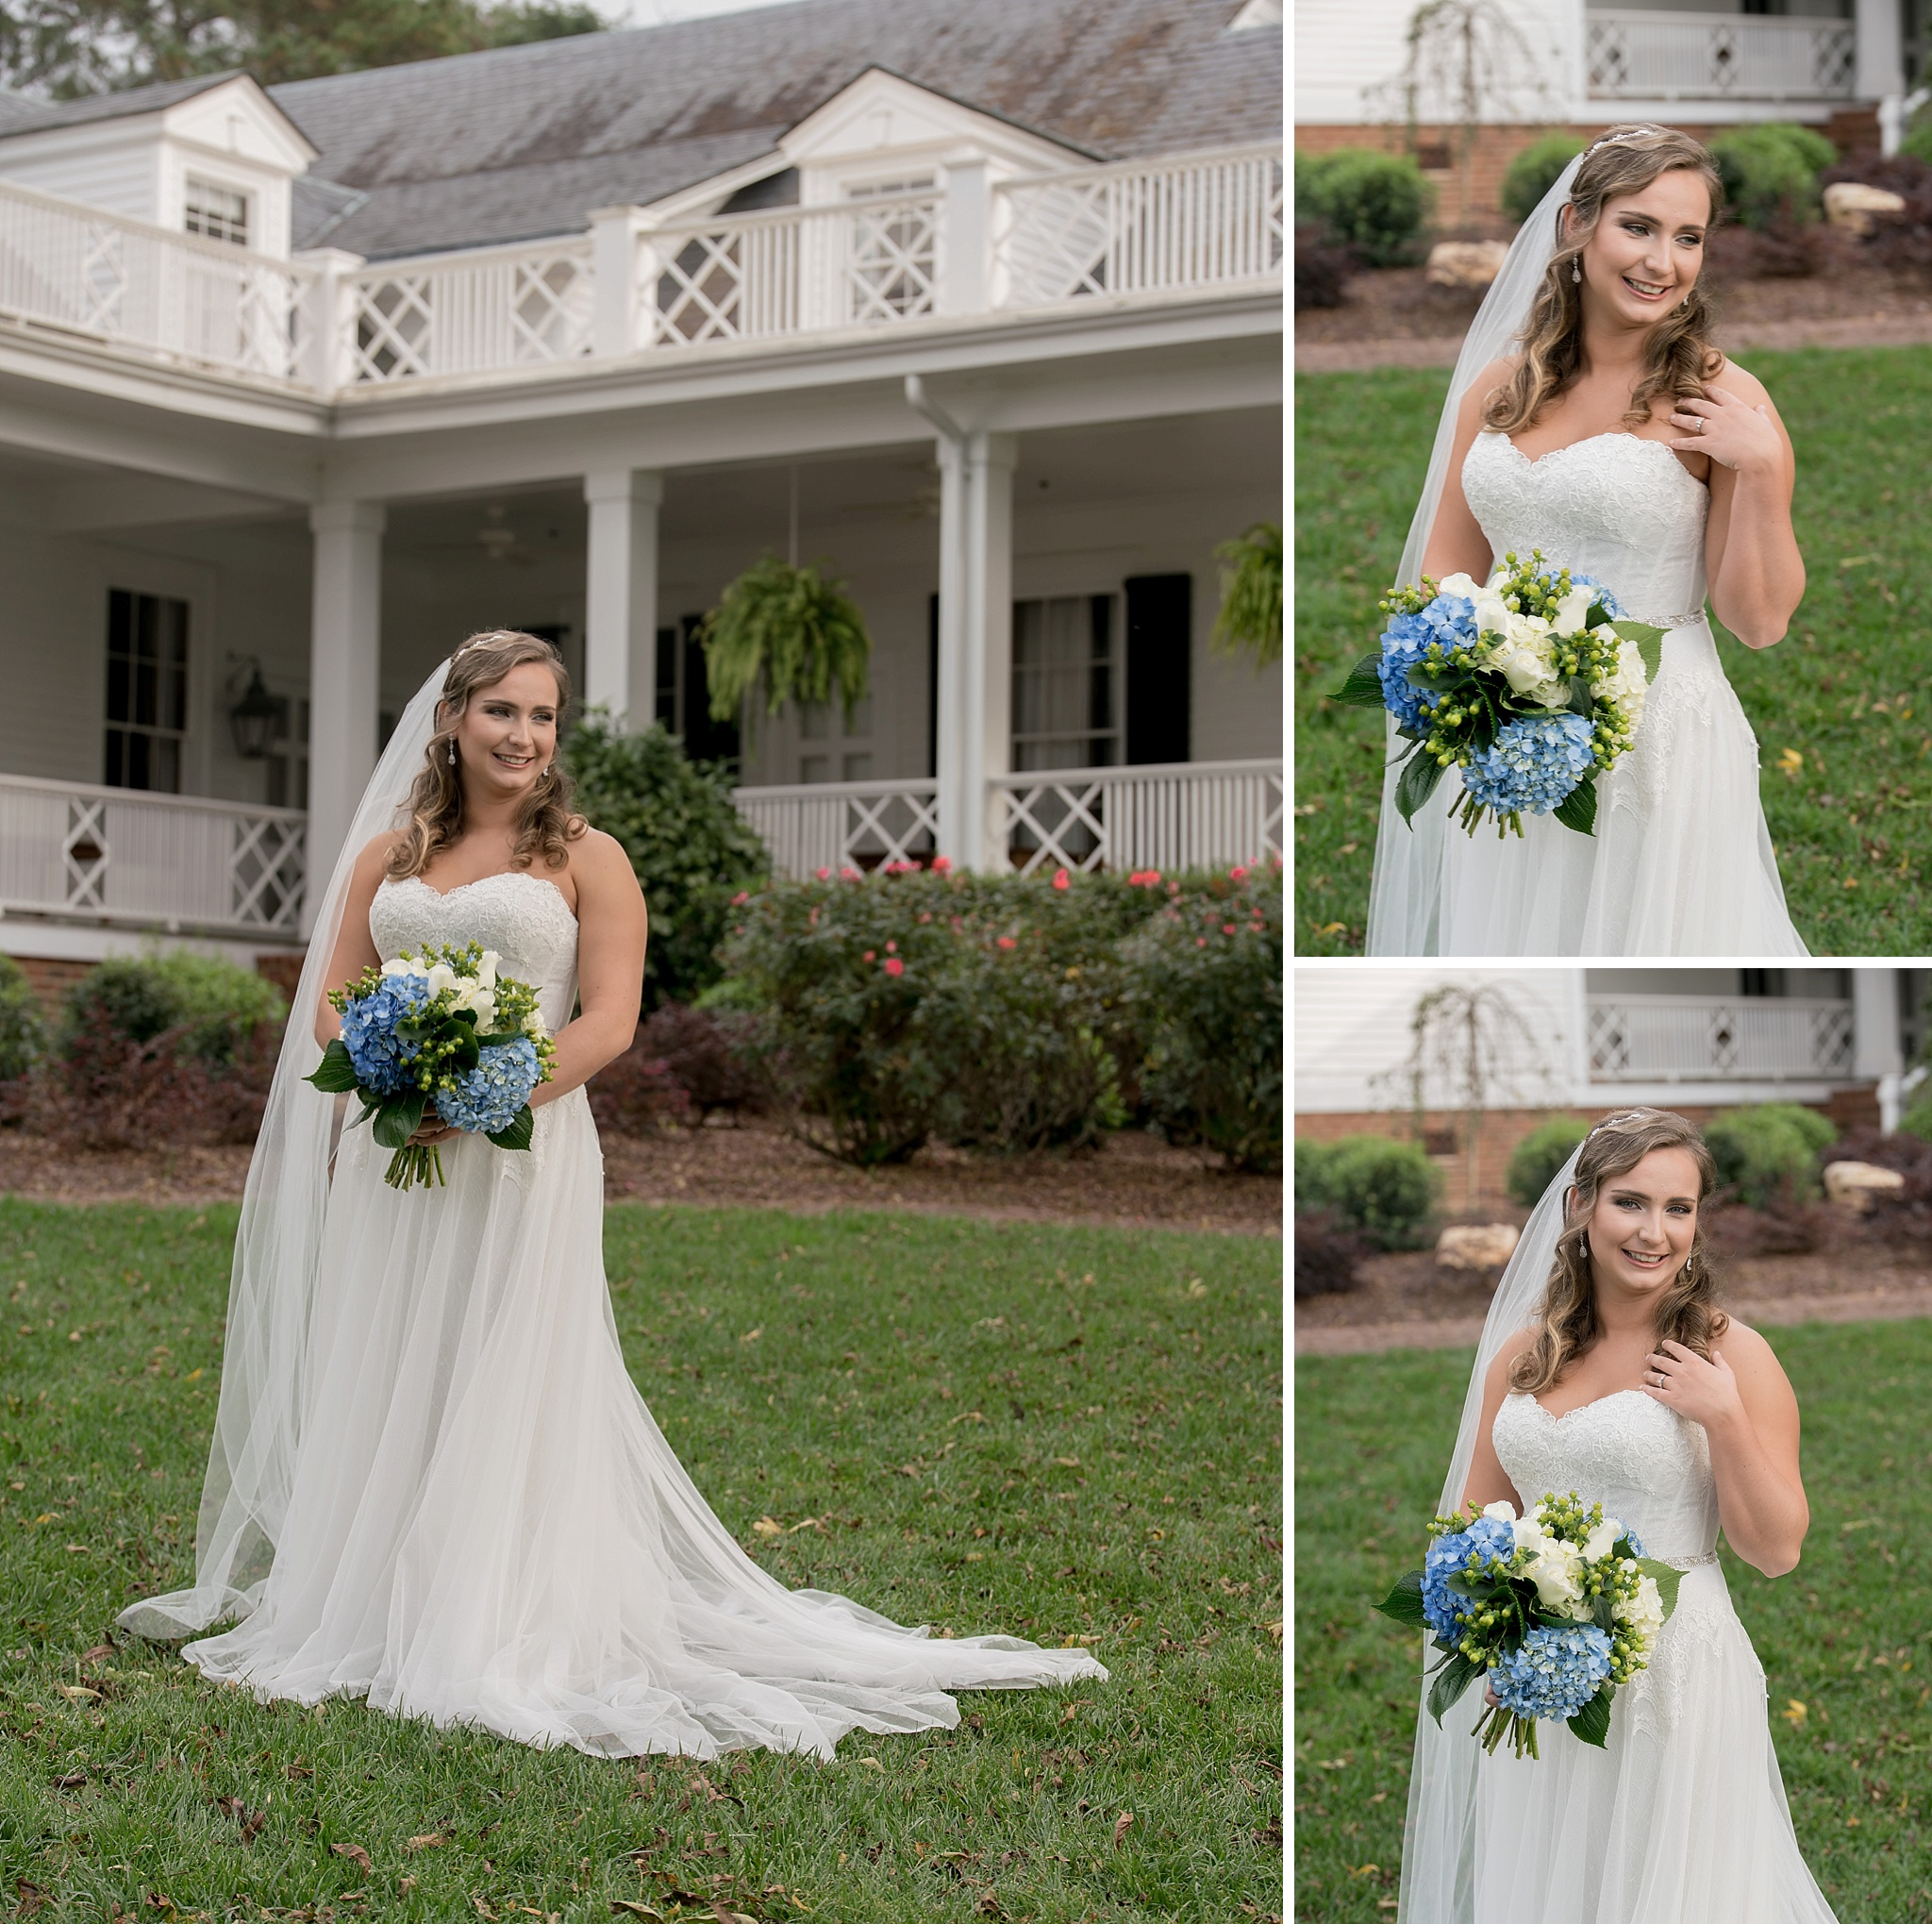 Rose-Hill-Plantation-Wedding-Photographer-063.jpg